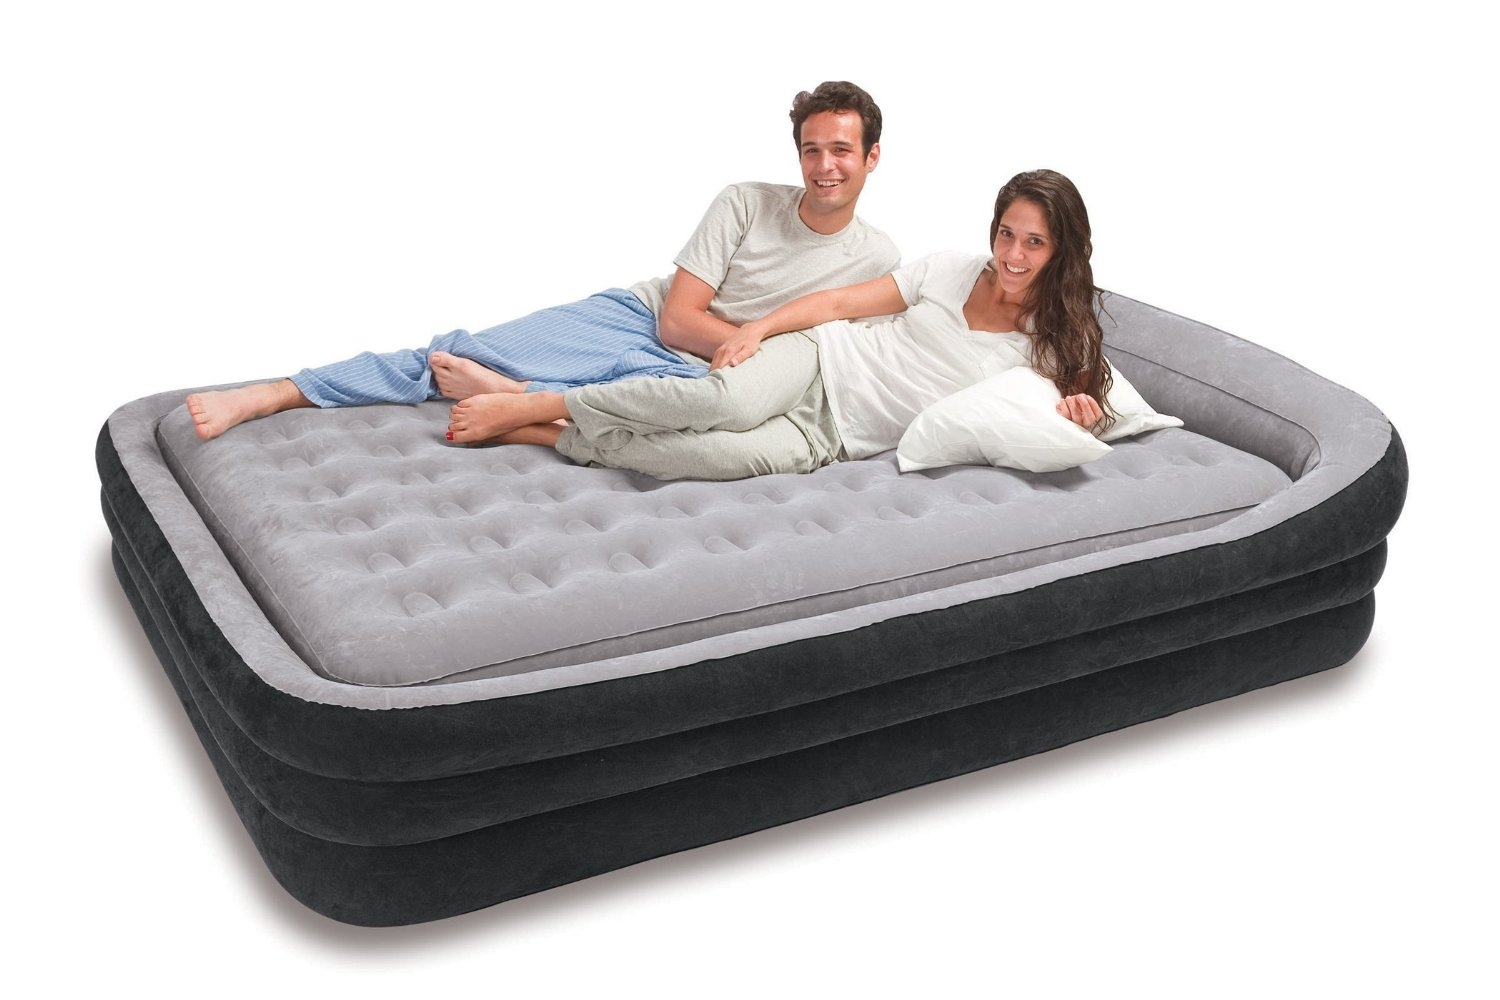 Blow Up Bed On Framebest air mattress with frame bestairmattressguide